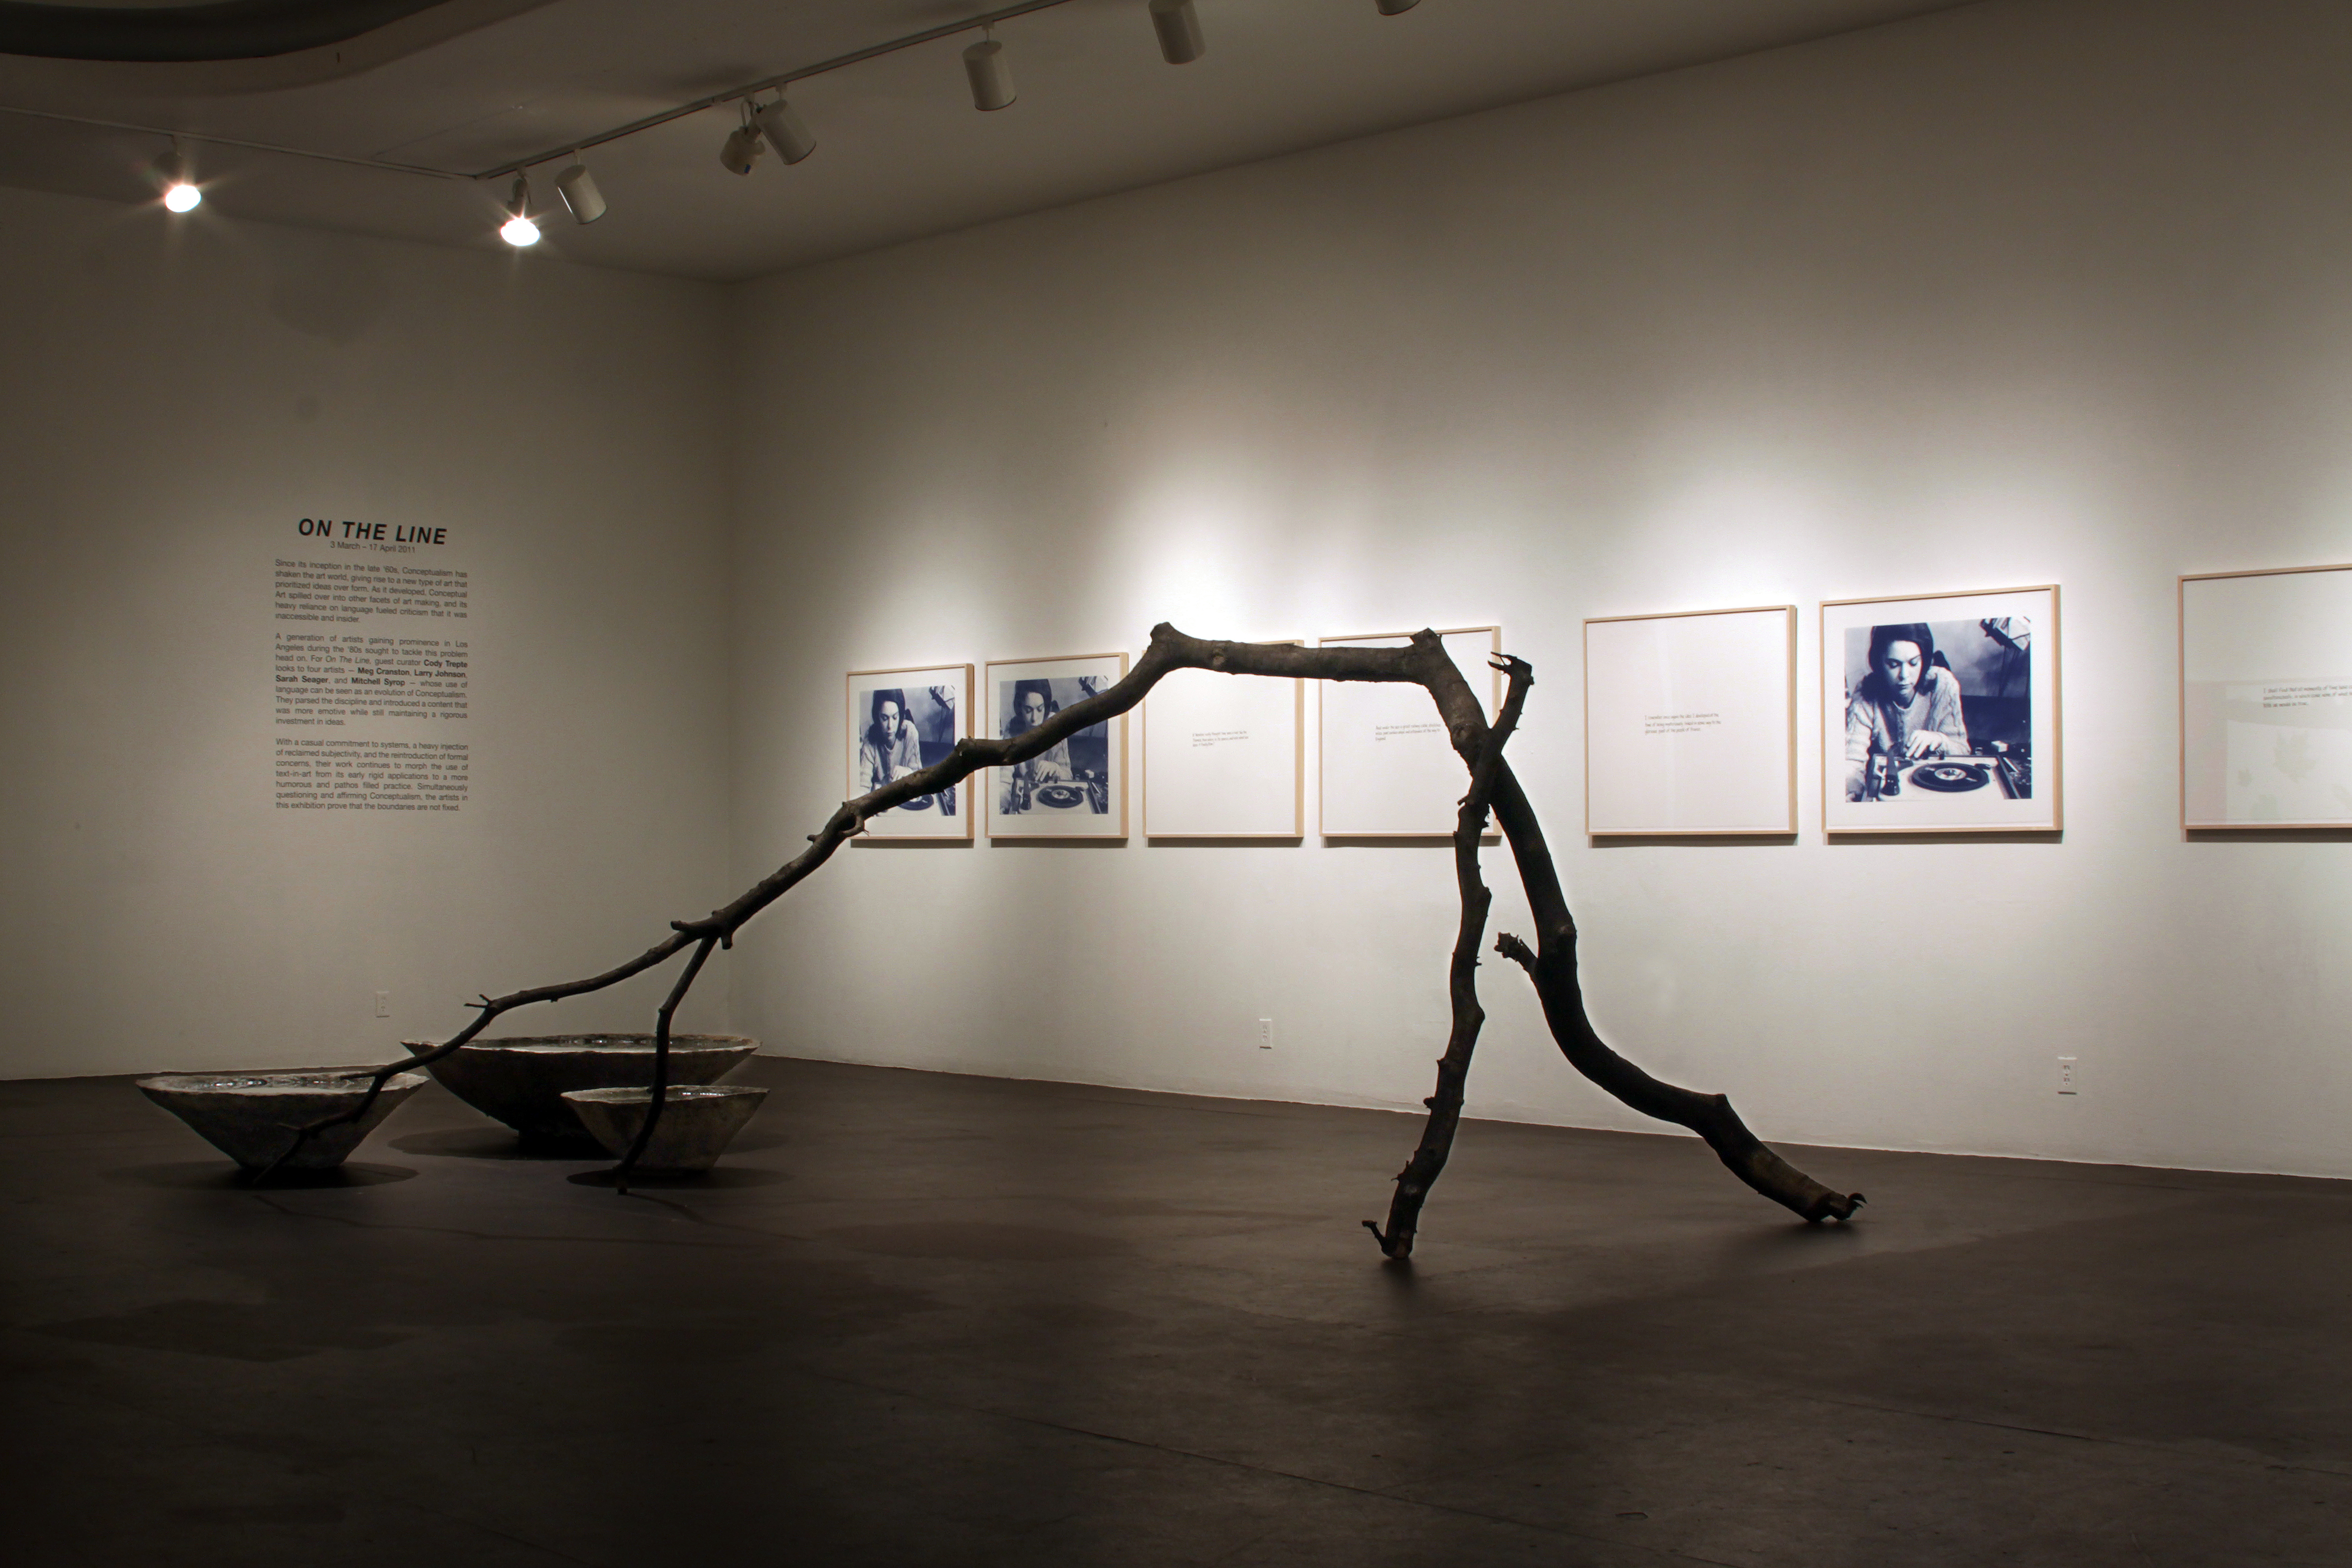 20110303_On-The-Line_Installation-view-credit-Calvin-Lee_04